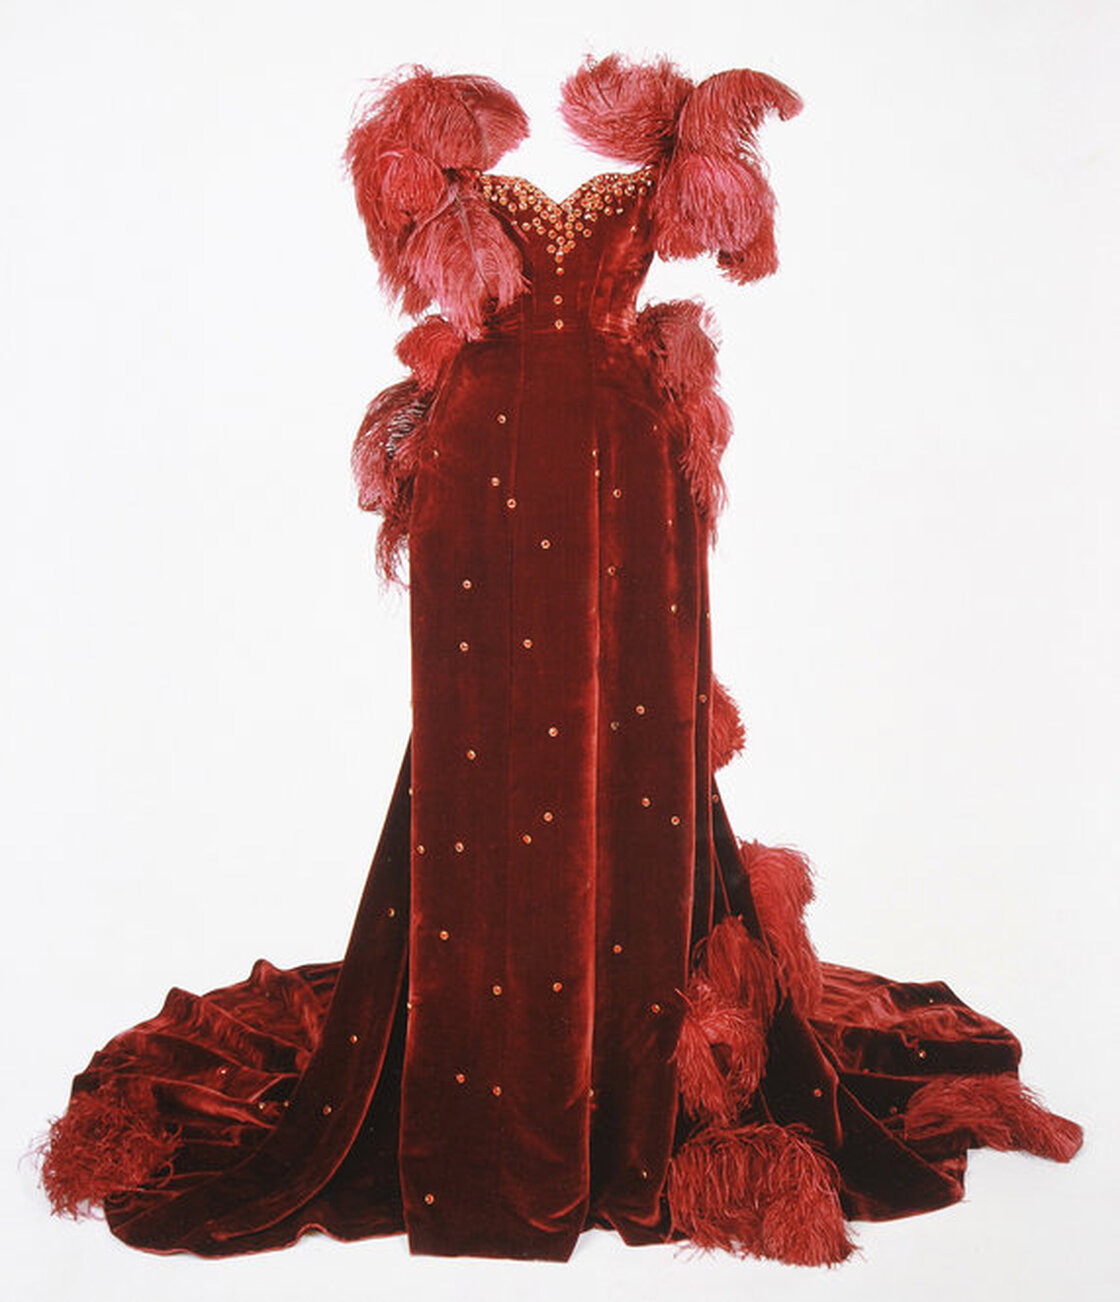 Burgundy ball gown worn by Vivien Leigh as Scarlett O'Hara in Gone With The Wind. Image courtesy Harry Ransom Center.